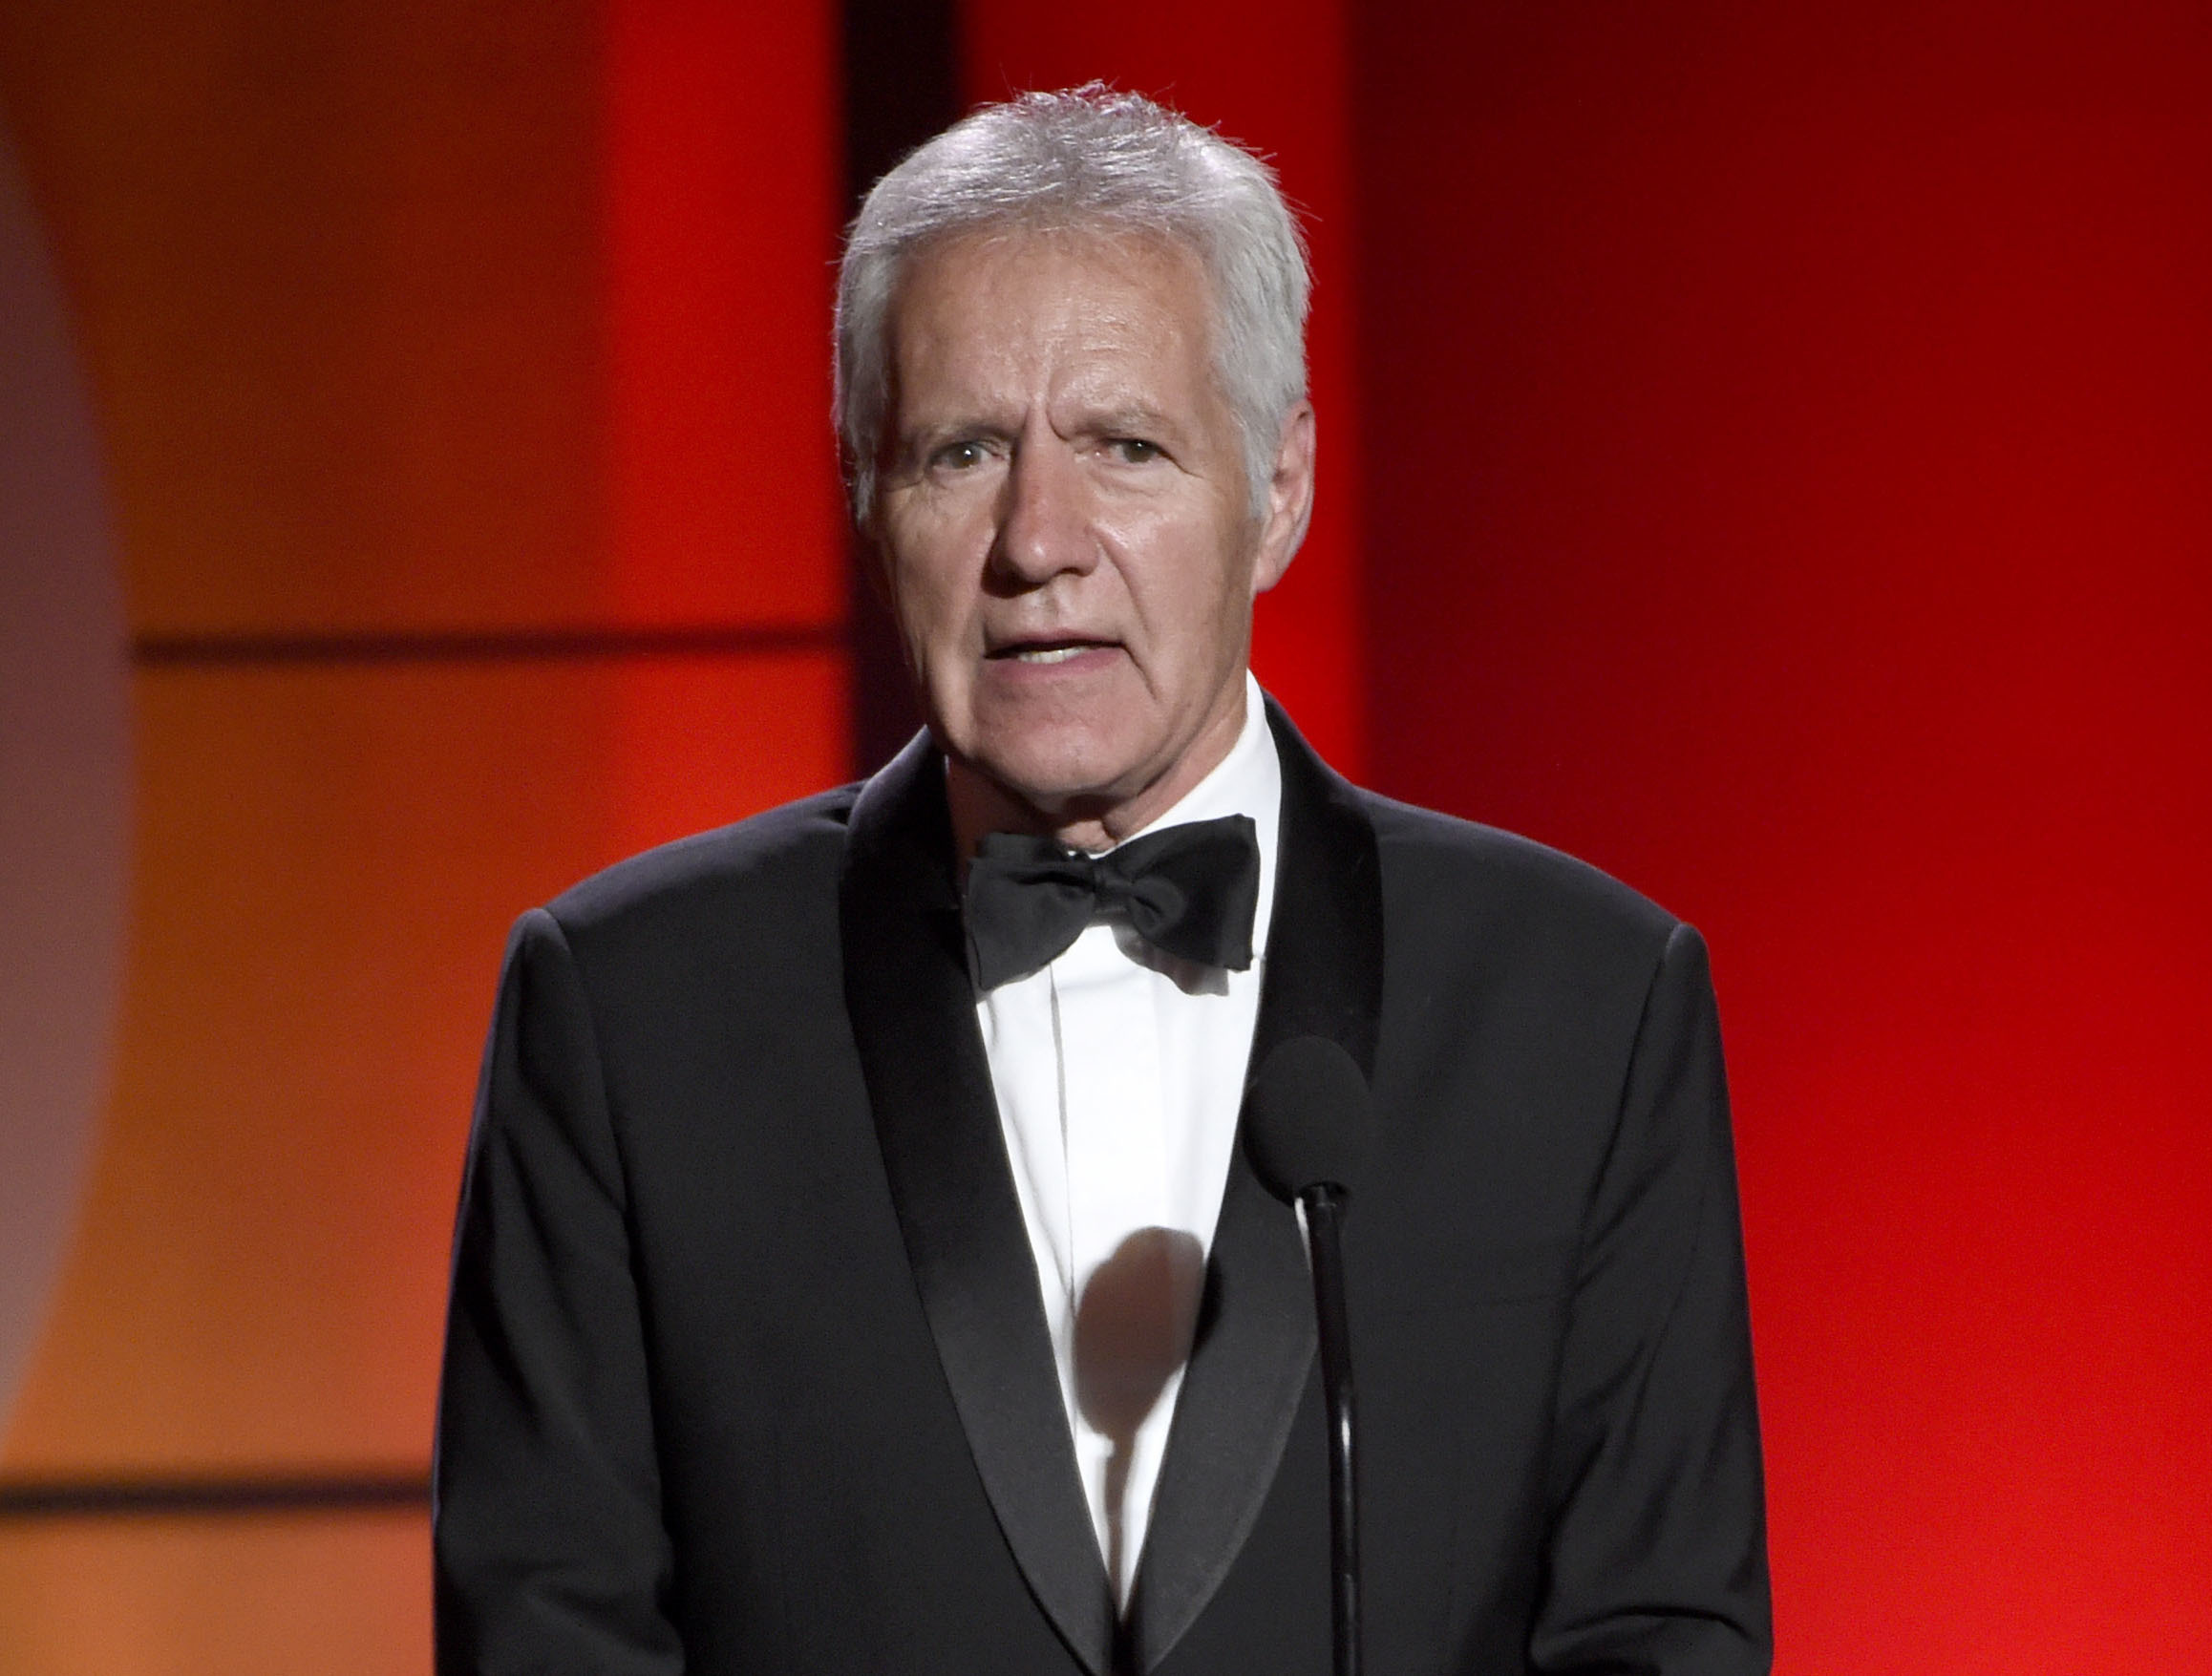 Alex Trebek speaks at the 44th annual Daytime Emmy Awards at the Pasadena Civic Center in Pasadena, Calif., on April 30, 2017.